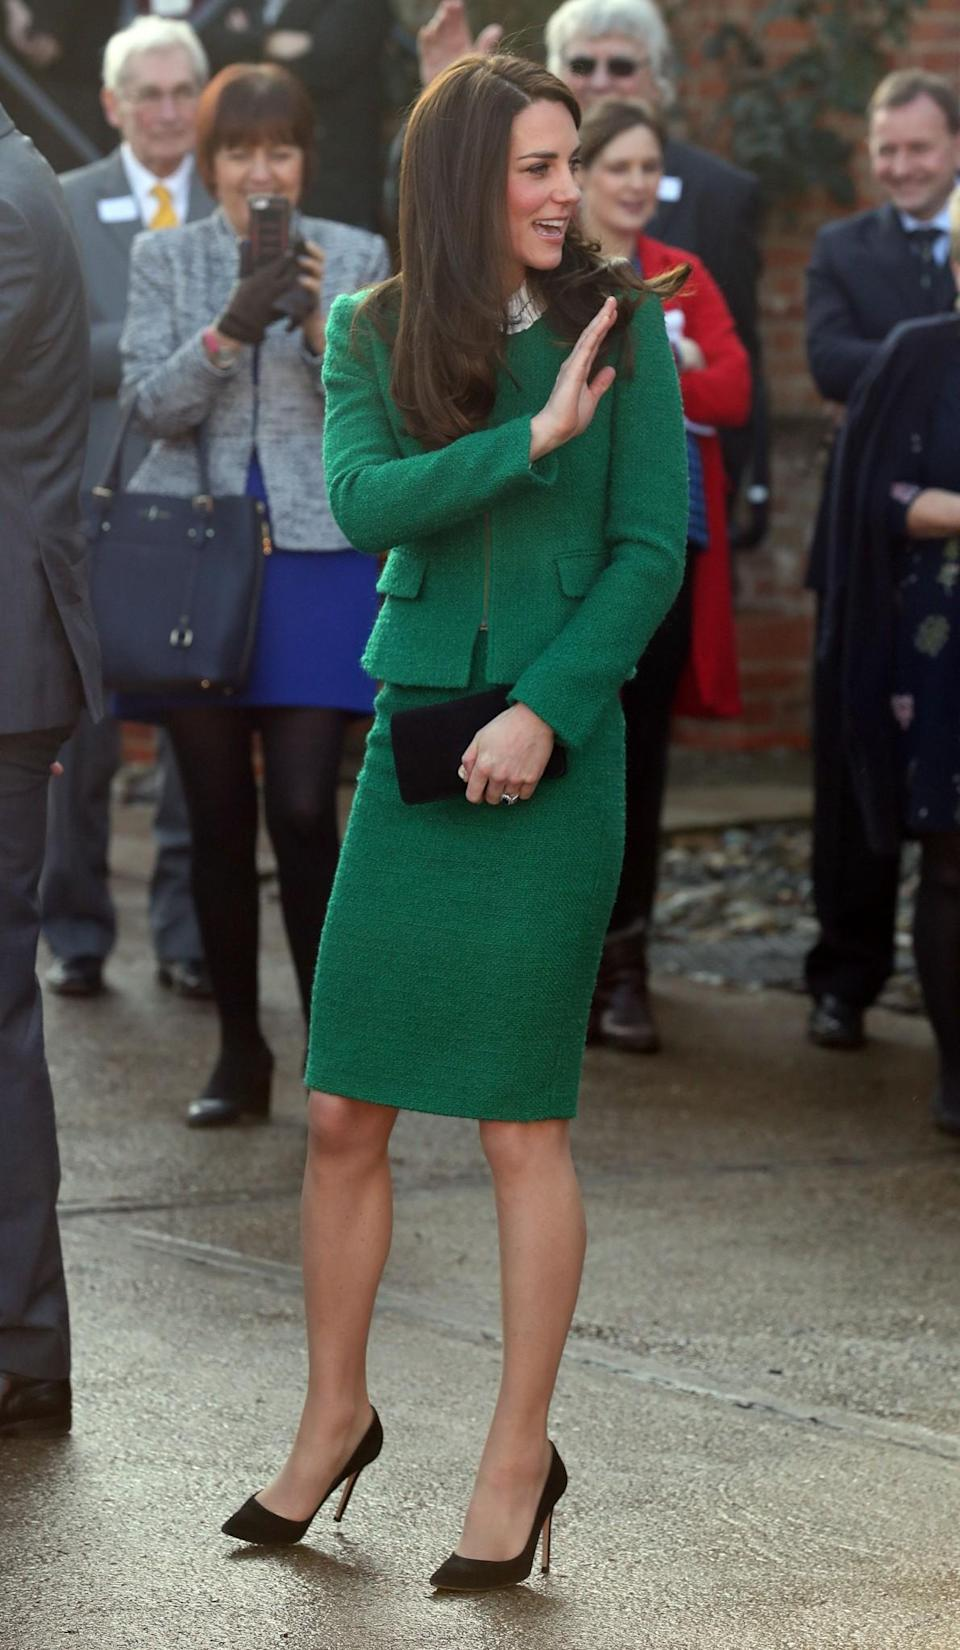 <p>The Duchess debuted a new skirt suit from high street retailer, Hobbs, while visiting a children's hospice in Norfolk. The emerald green style is made in an elegant tweed fabric and was paired with a simple white collared shirt and black heels.<br><i>[Photo: PA]</i> </p>